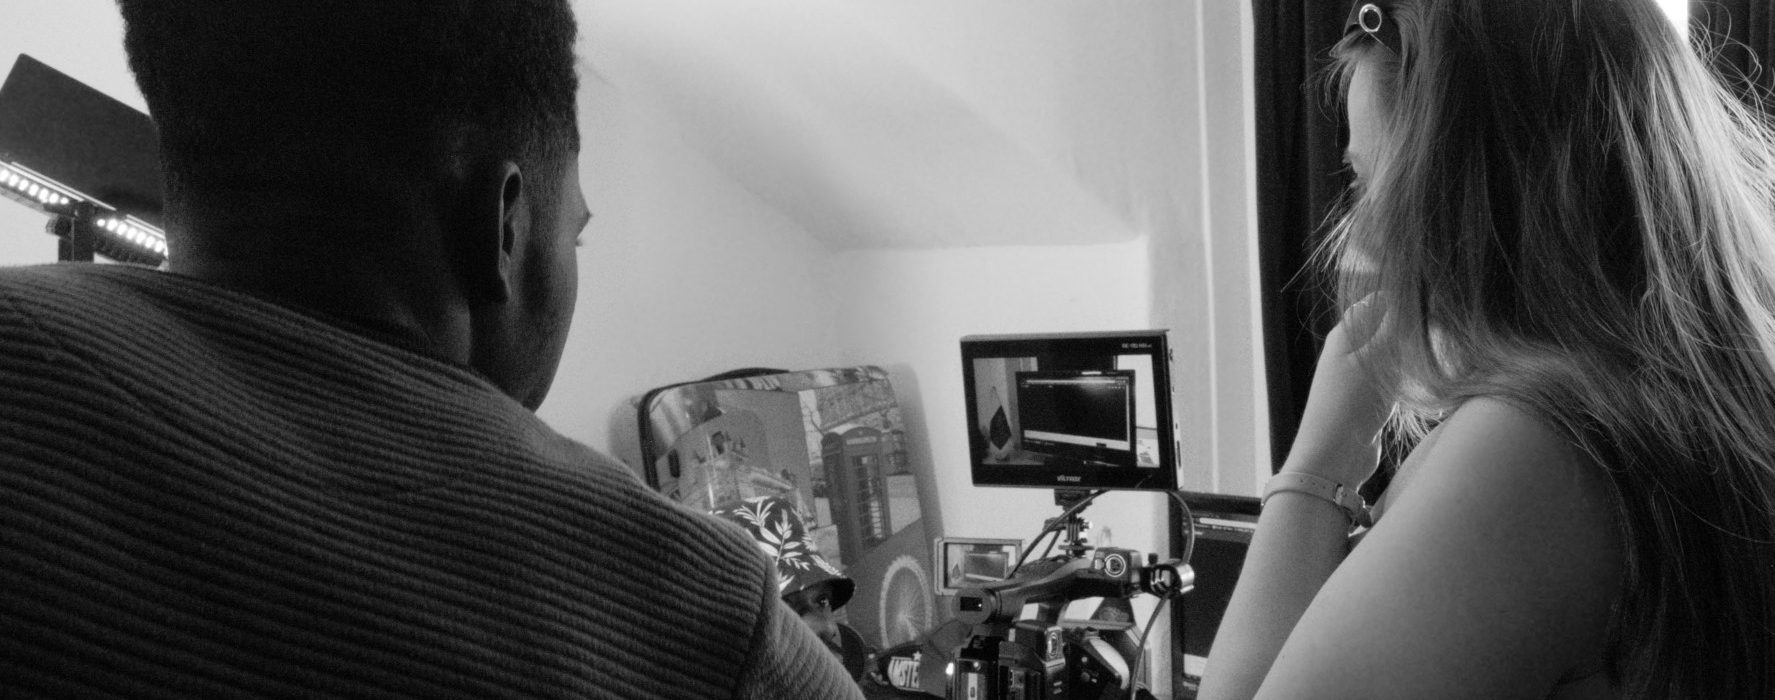 Behind the scenes photo from Movement Films narrative music video set Life Now in black and white